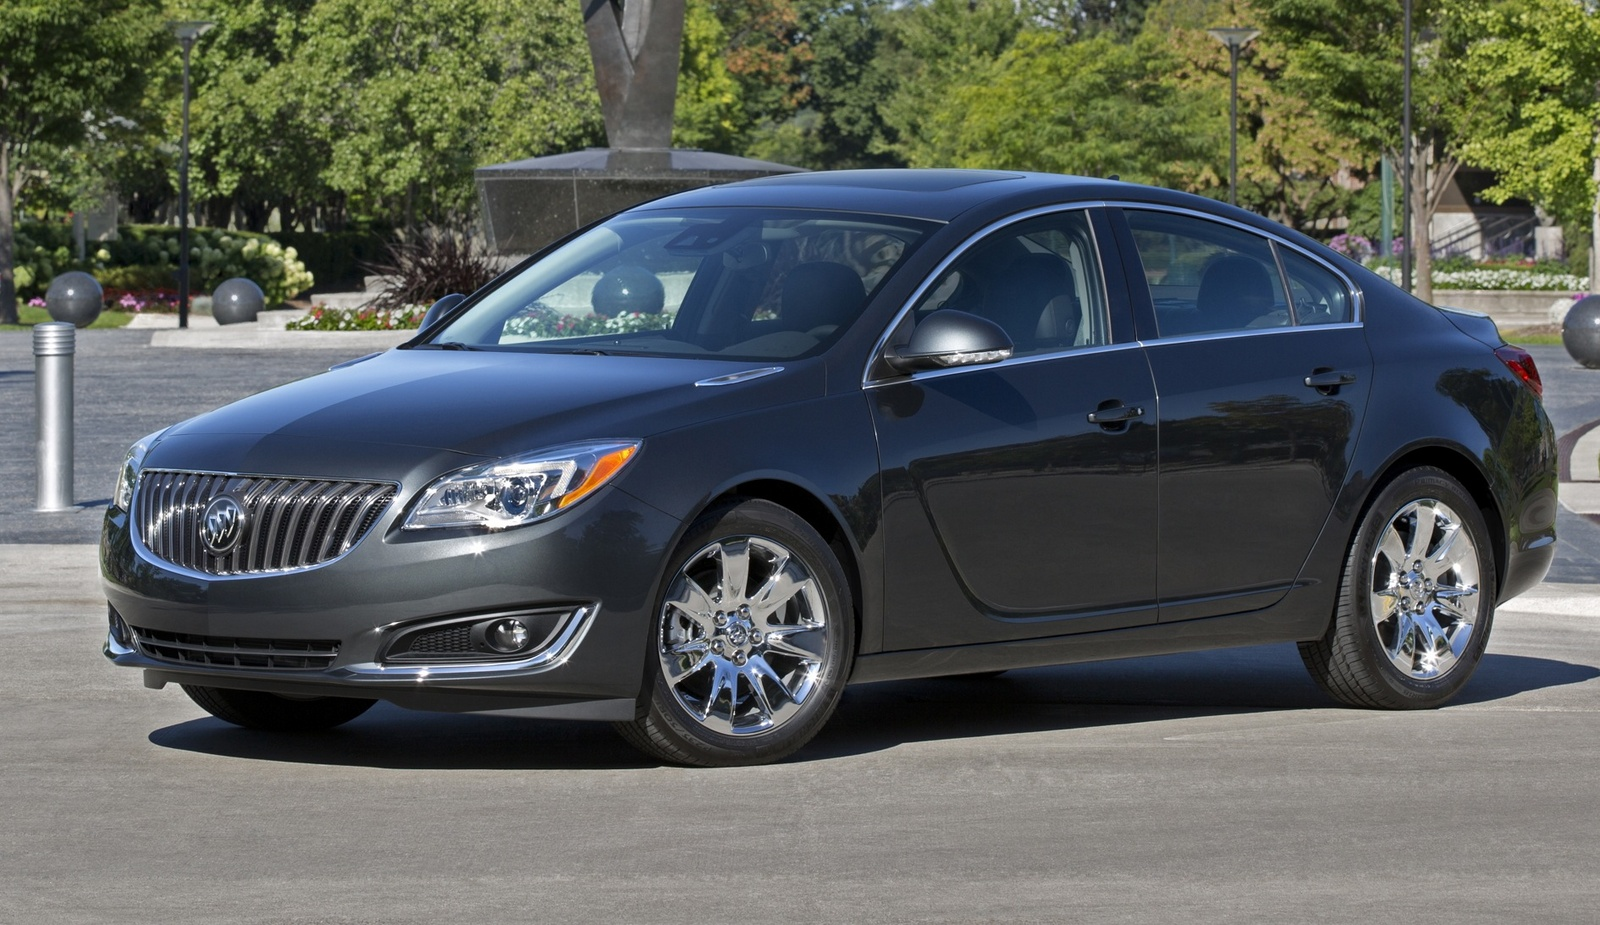 2015 Buick Regal #2